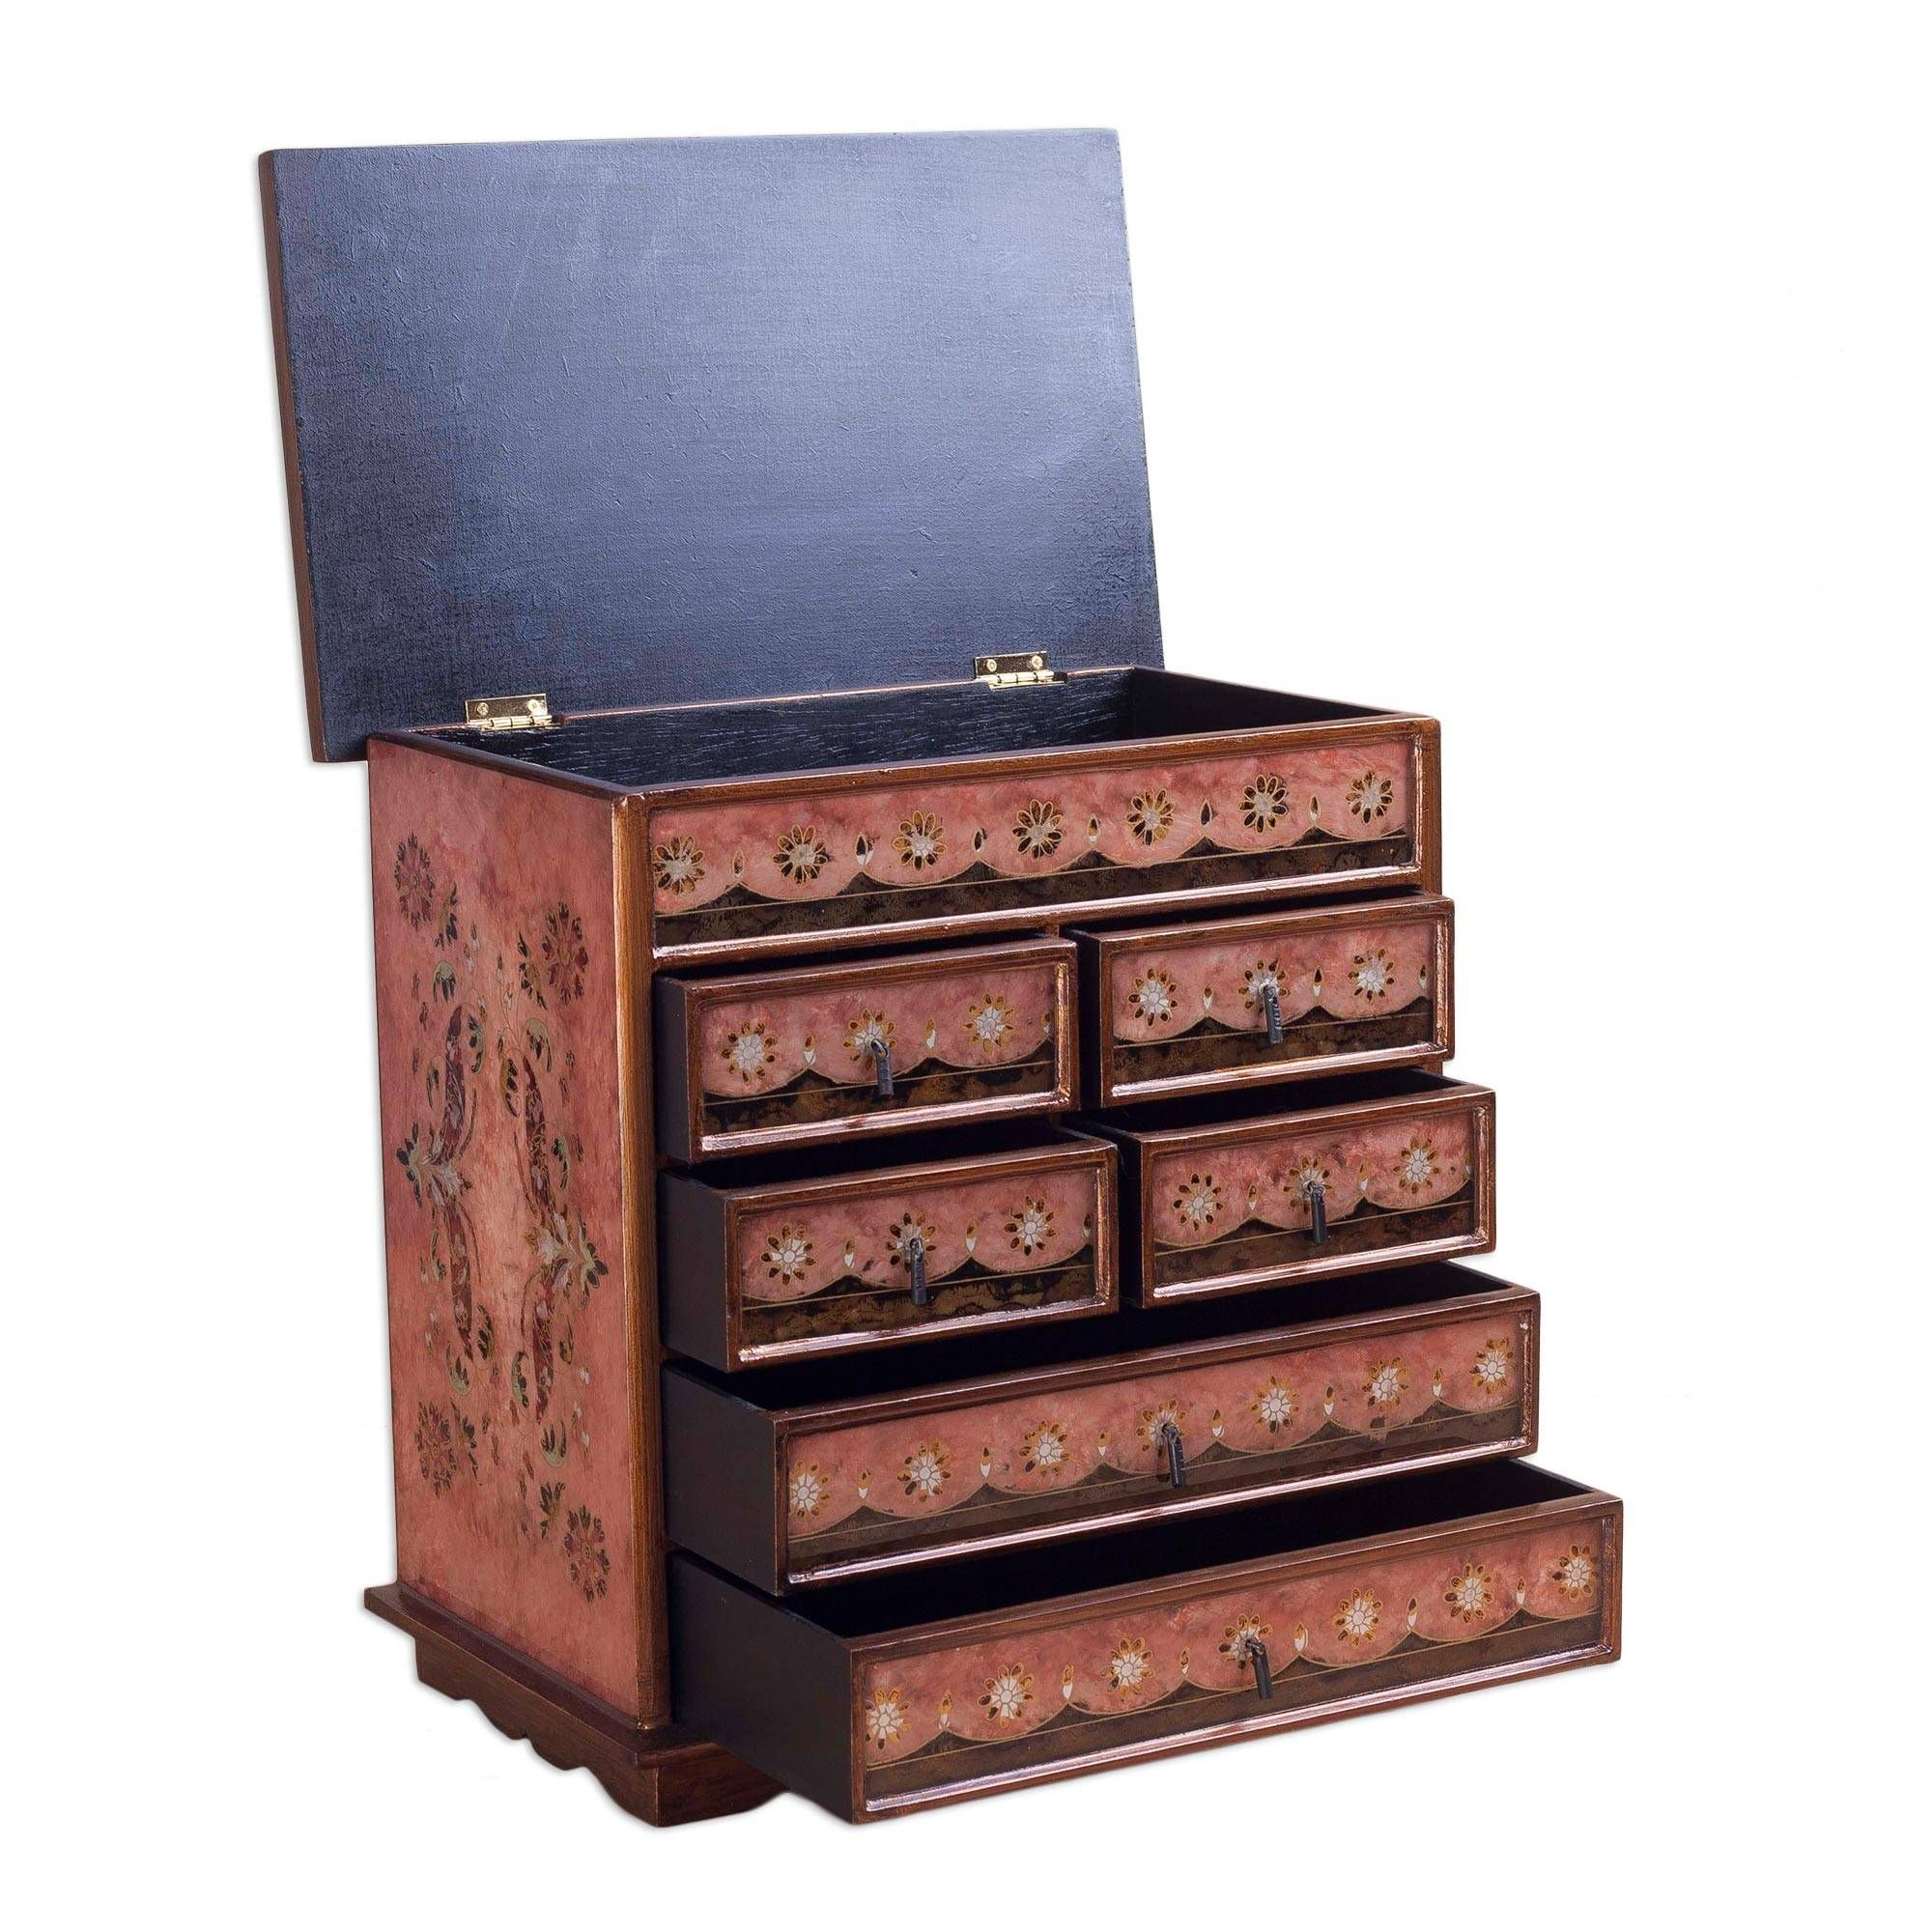 Reverse Painted Glass Jewelry Chest Vintage Rose Reverse Painted Glass Jewelry Chest Reverse Painted